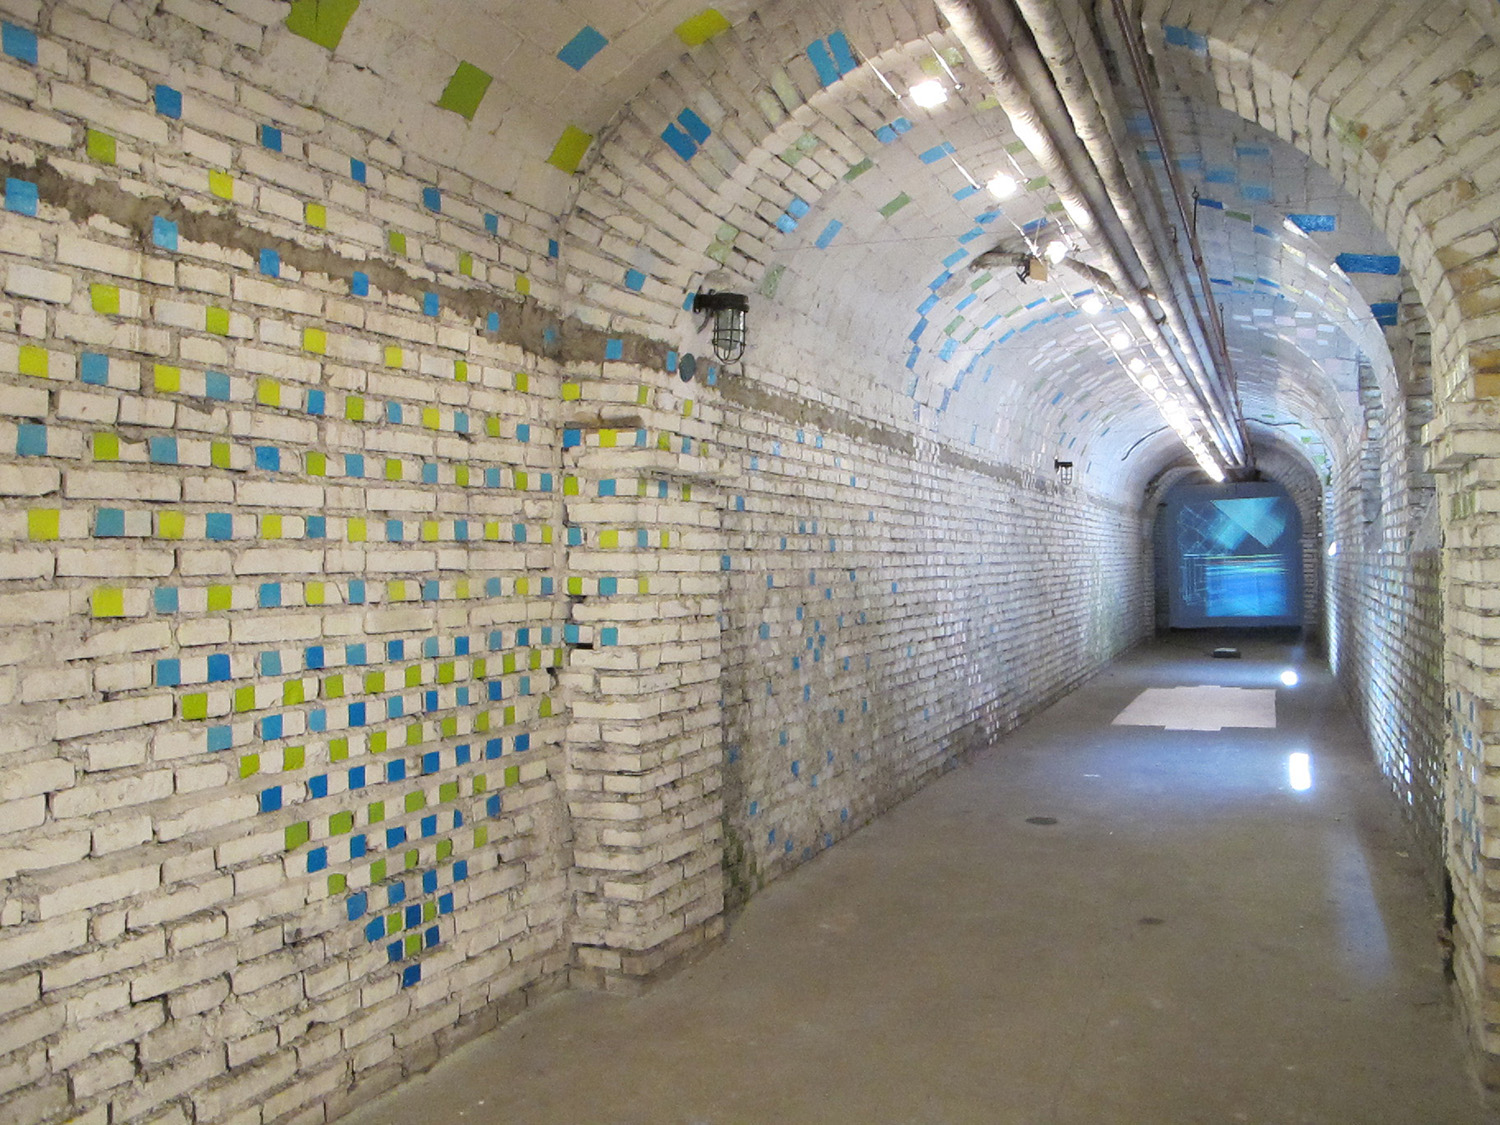 Tunnel Vision ,   2010, Academia Romania, Rome Italy,  latex paint on brick wall  'Spazi Aperti' group show curated by Mirela Pribac & Dina Dancu